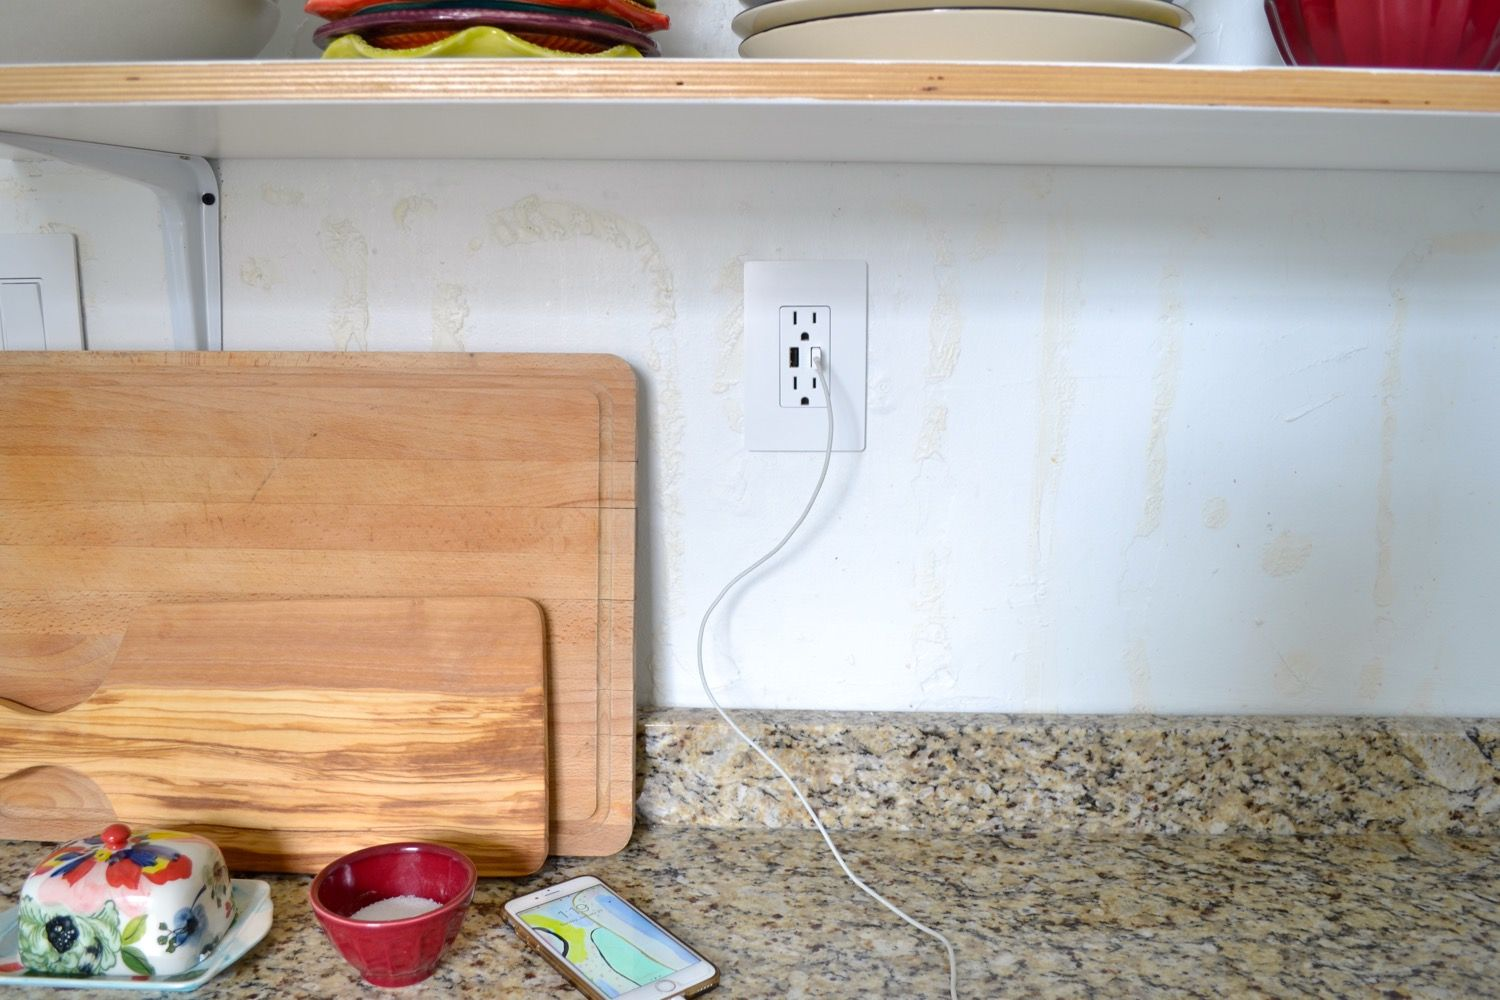 Elegant Outlet Covers L Changing Electrical Outlet Covers L Outlet Cover Ideas L Kitchen  Outlet Cover Ideas L Farmhouse Outlet Covers L Electrical Outlet In Kitchen  ...